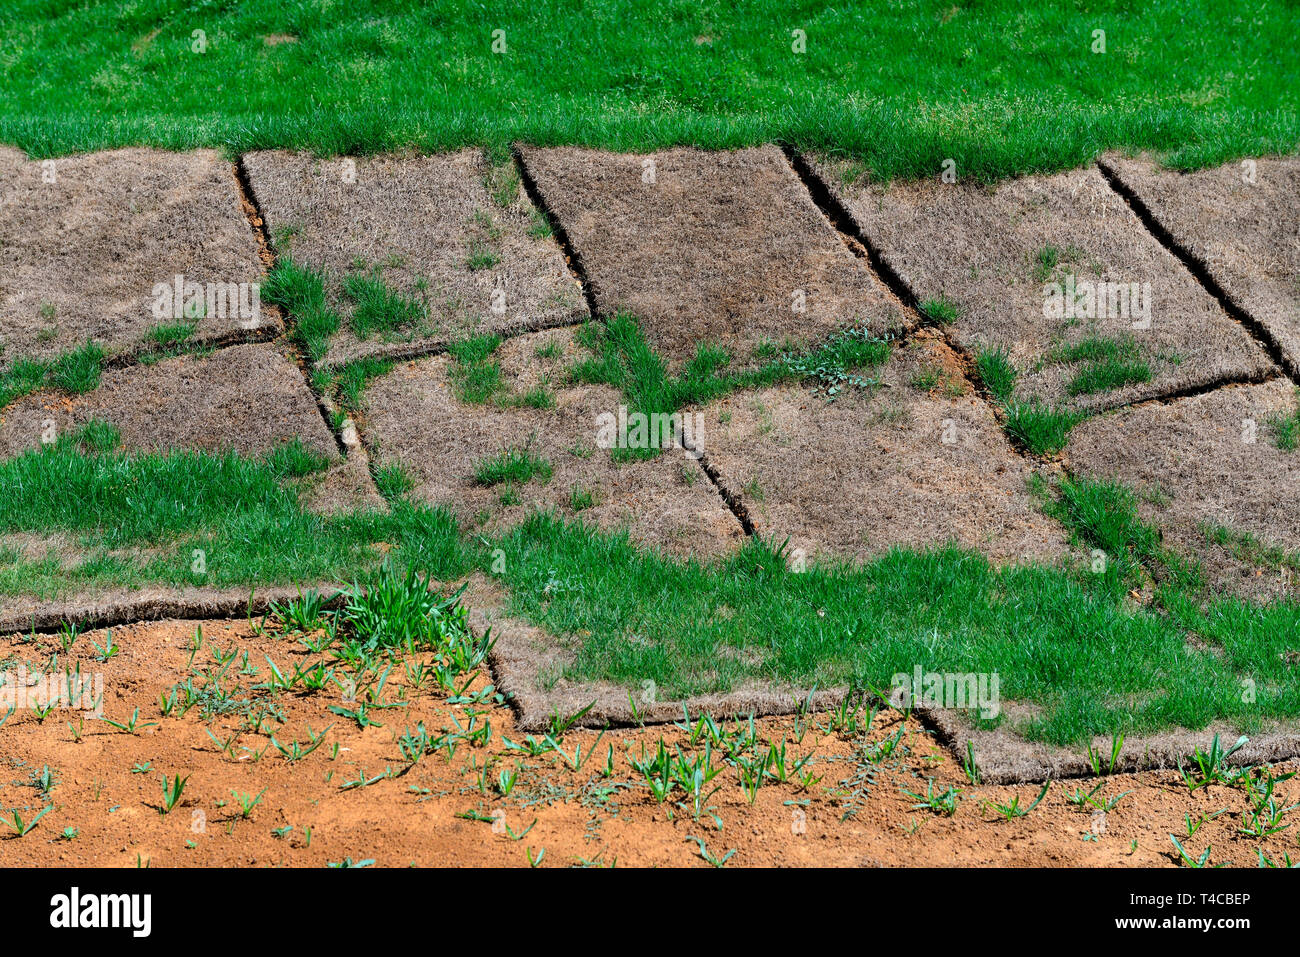 Grasrasen, vertrockneter Rollrasen Stock Photo